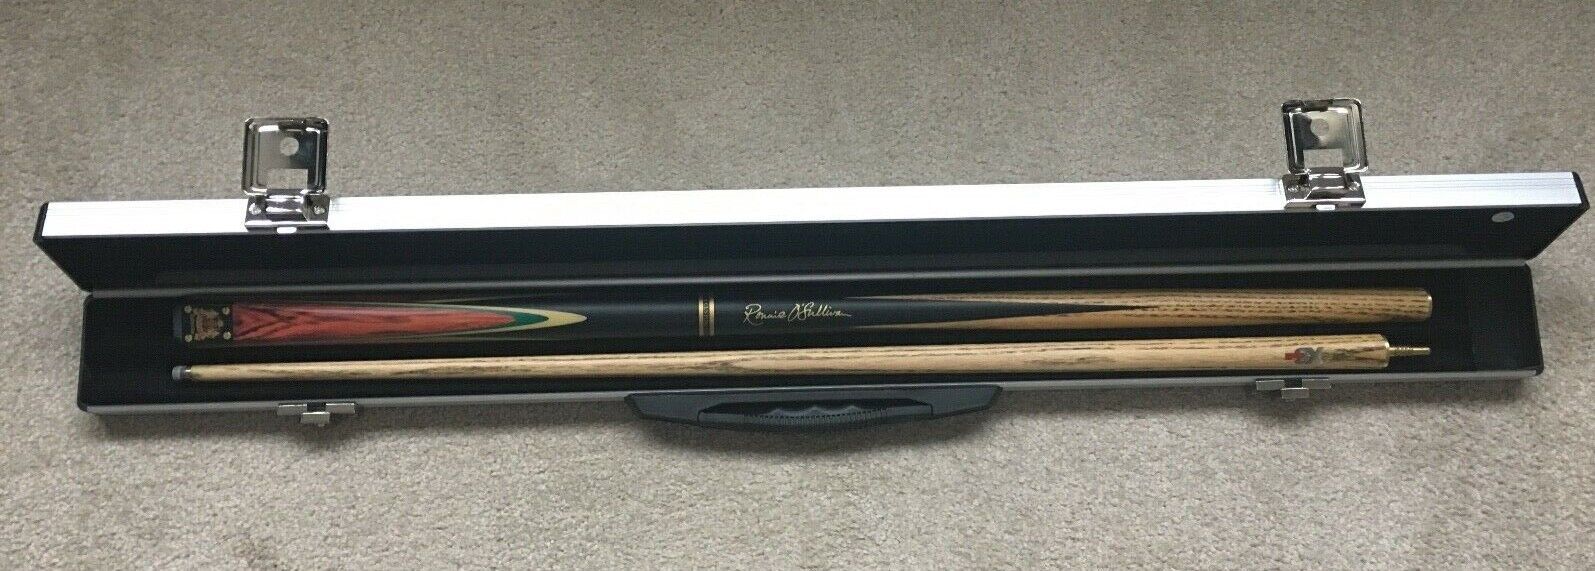 RONNIE O'SULLIVAN BCE CUSTOM HERITAGE COLLECTION SNOOKER CUE WITH METAL CASE